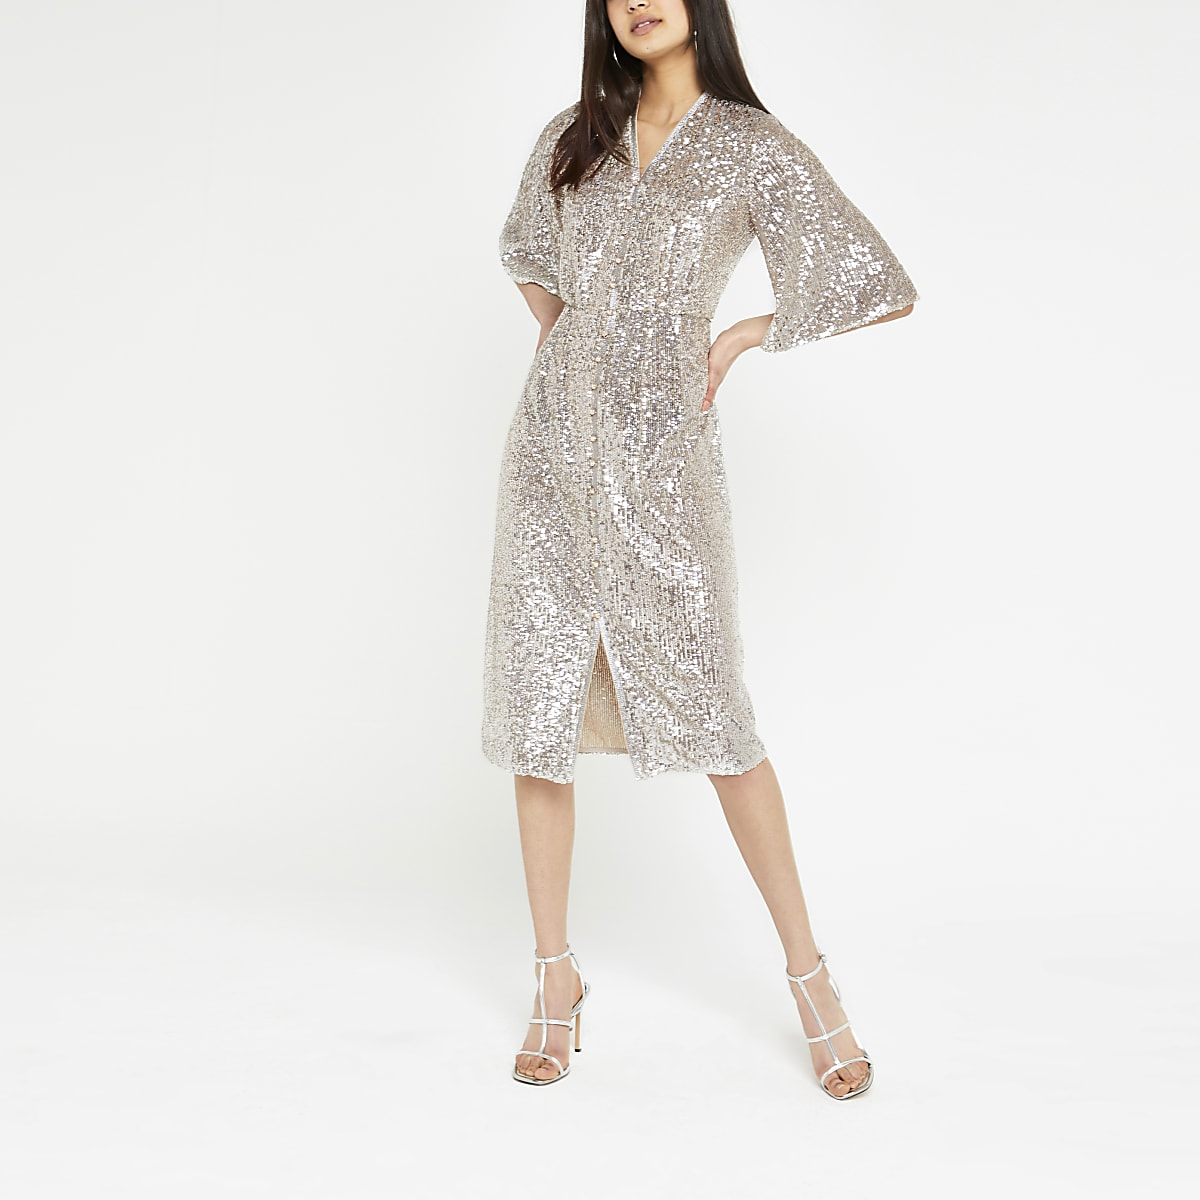 Silver sequin embellished kimono dress